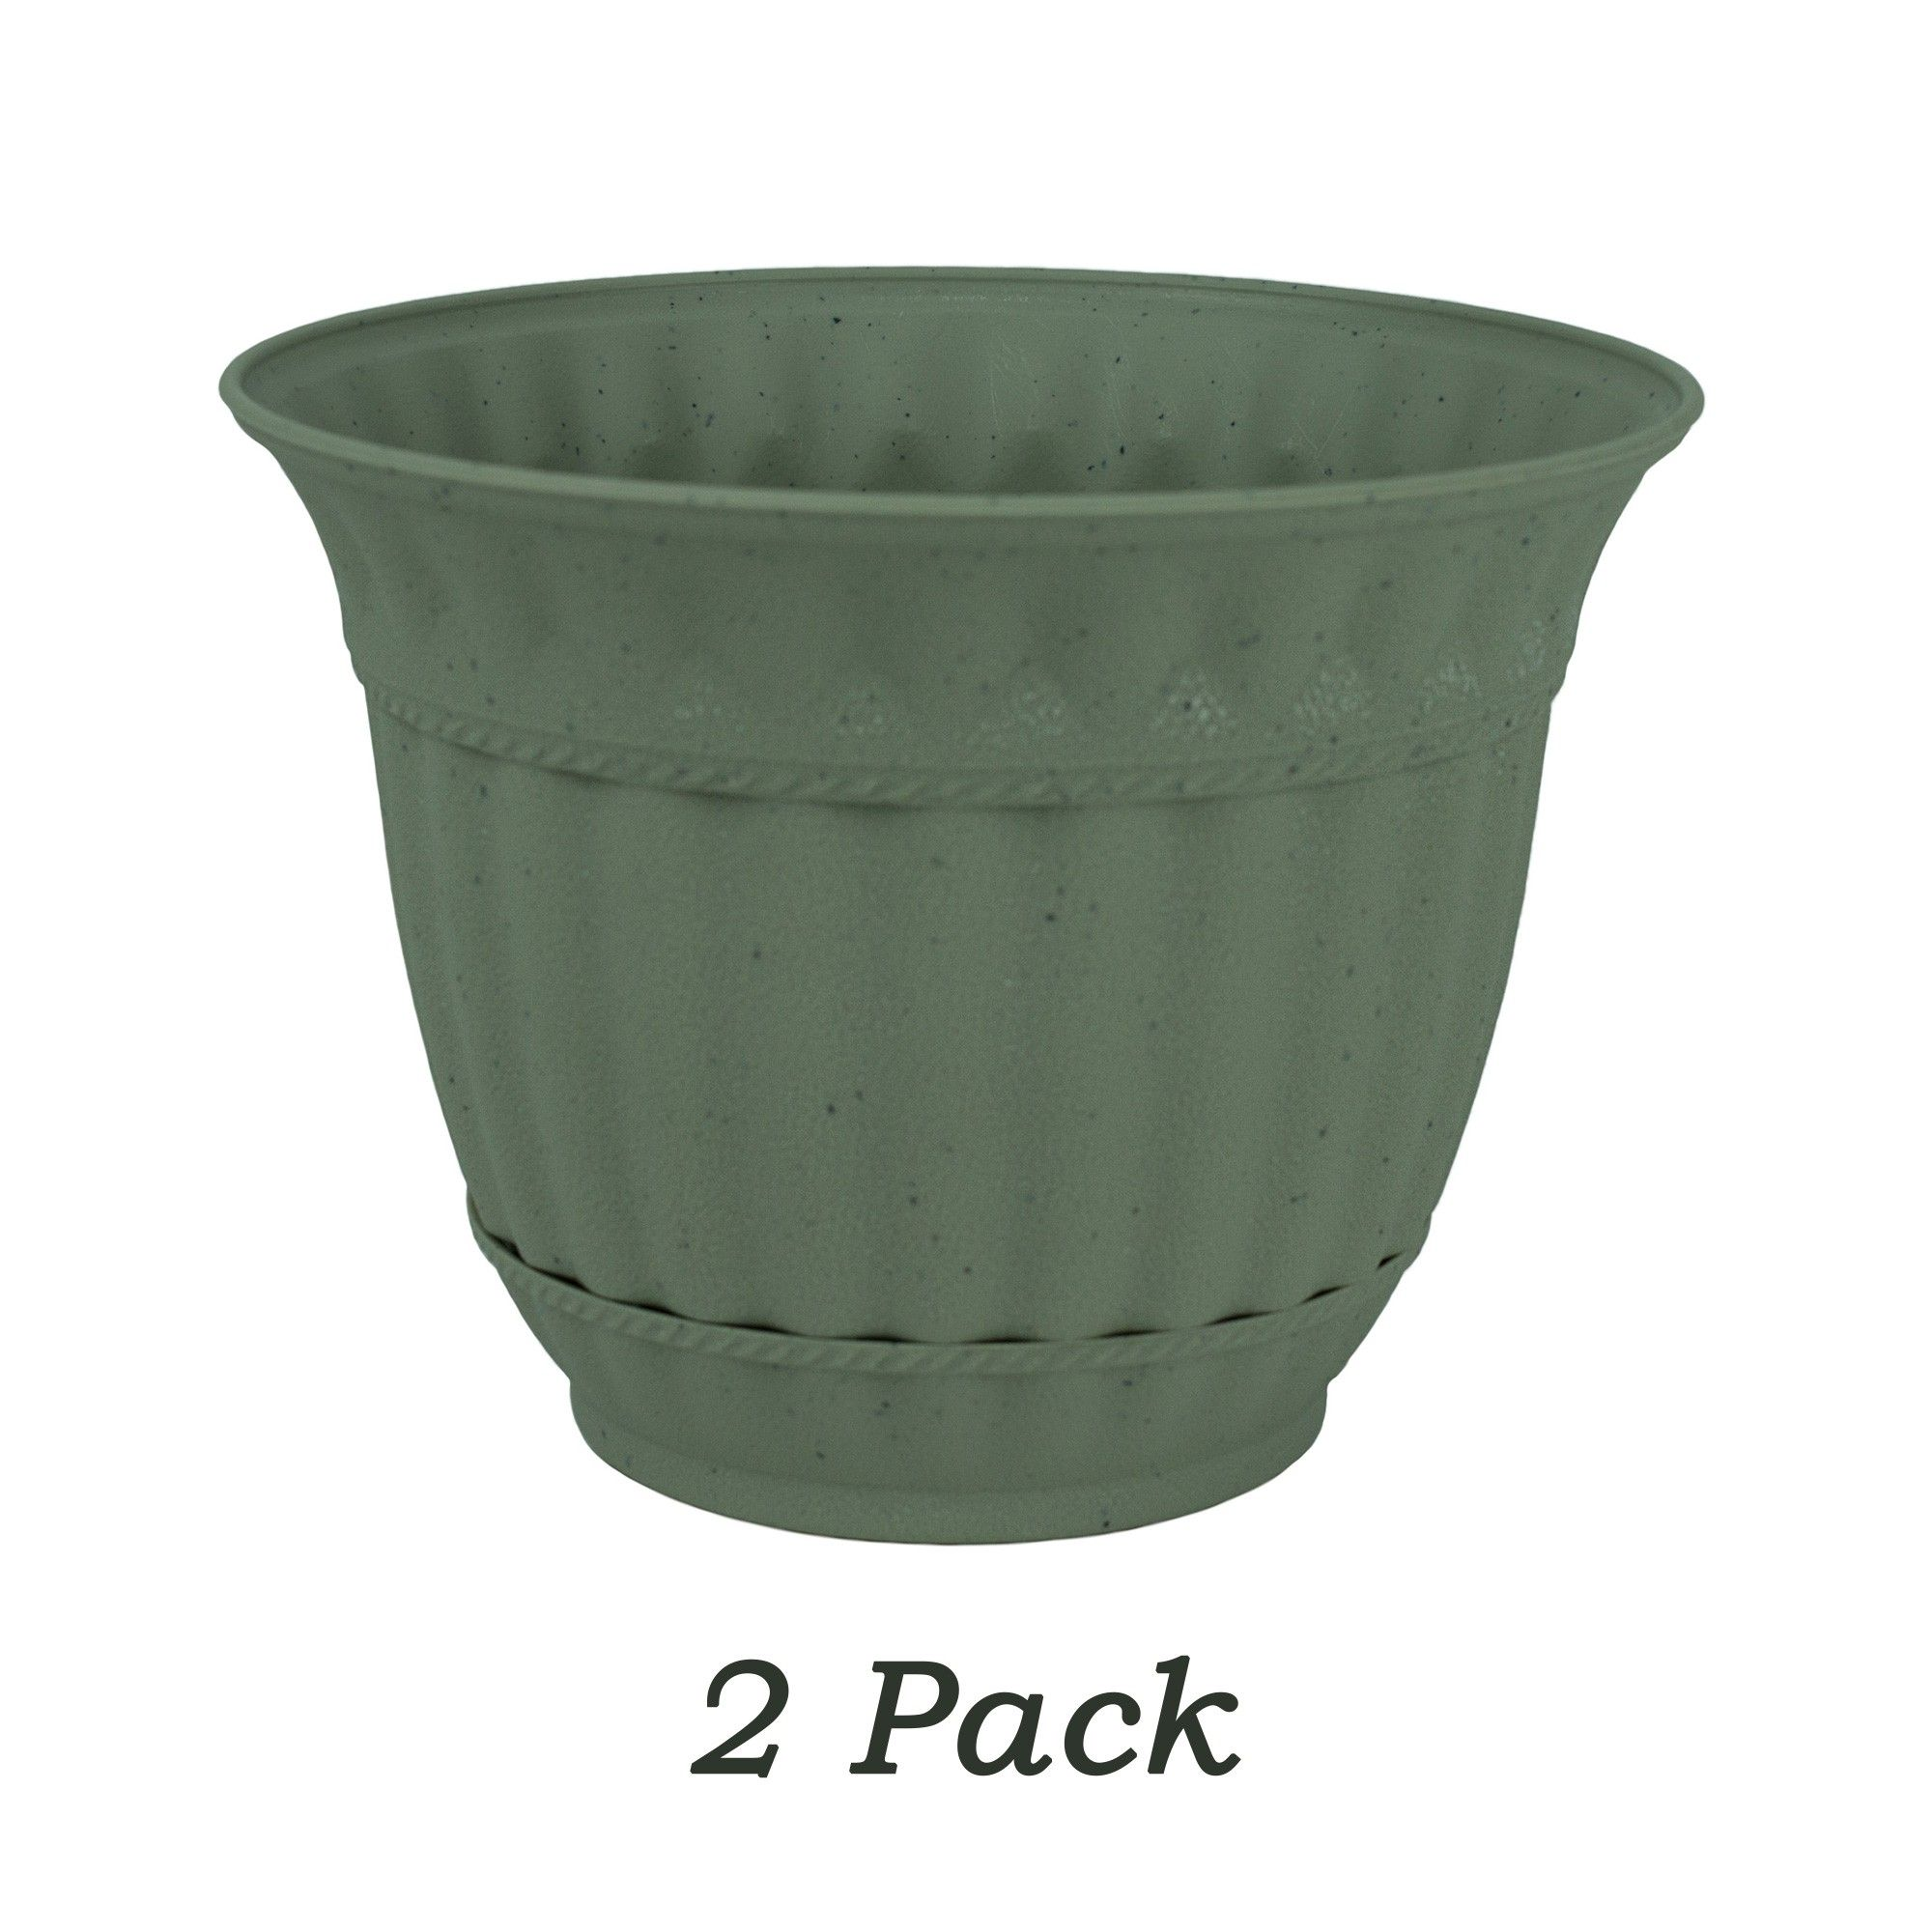 Misco 2 Pack 6 Inch Gray Stone Plastic Attached Saucer Milano Flower Pot Or Garden Planter Garden Planters Plastic Flower Pots Flower Pots